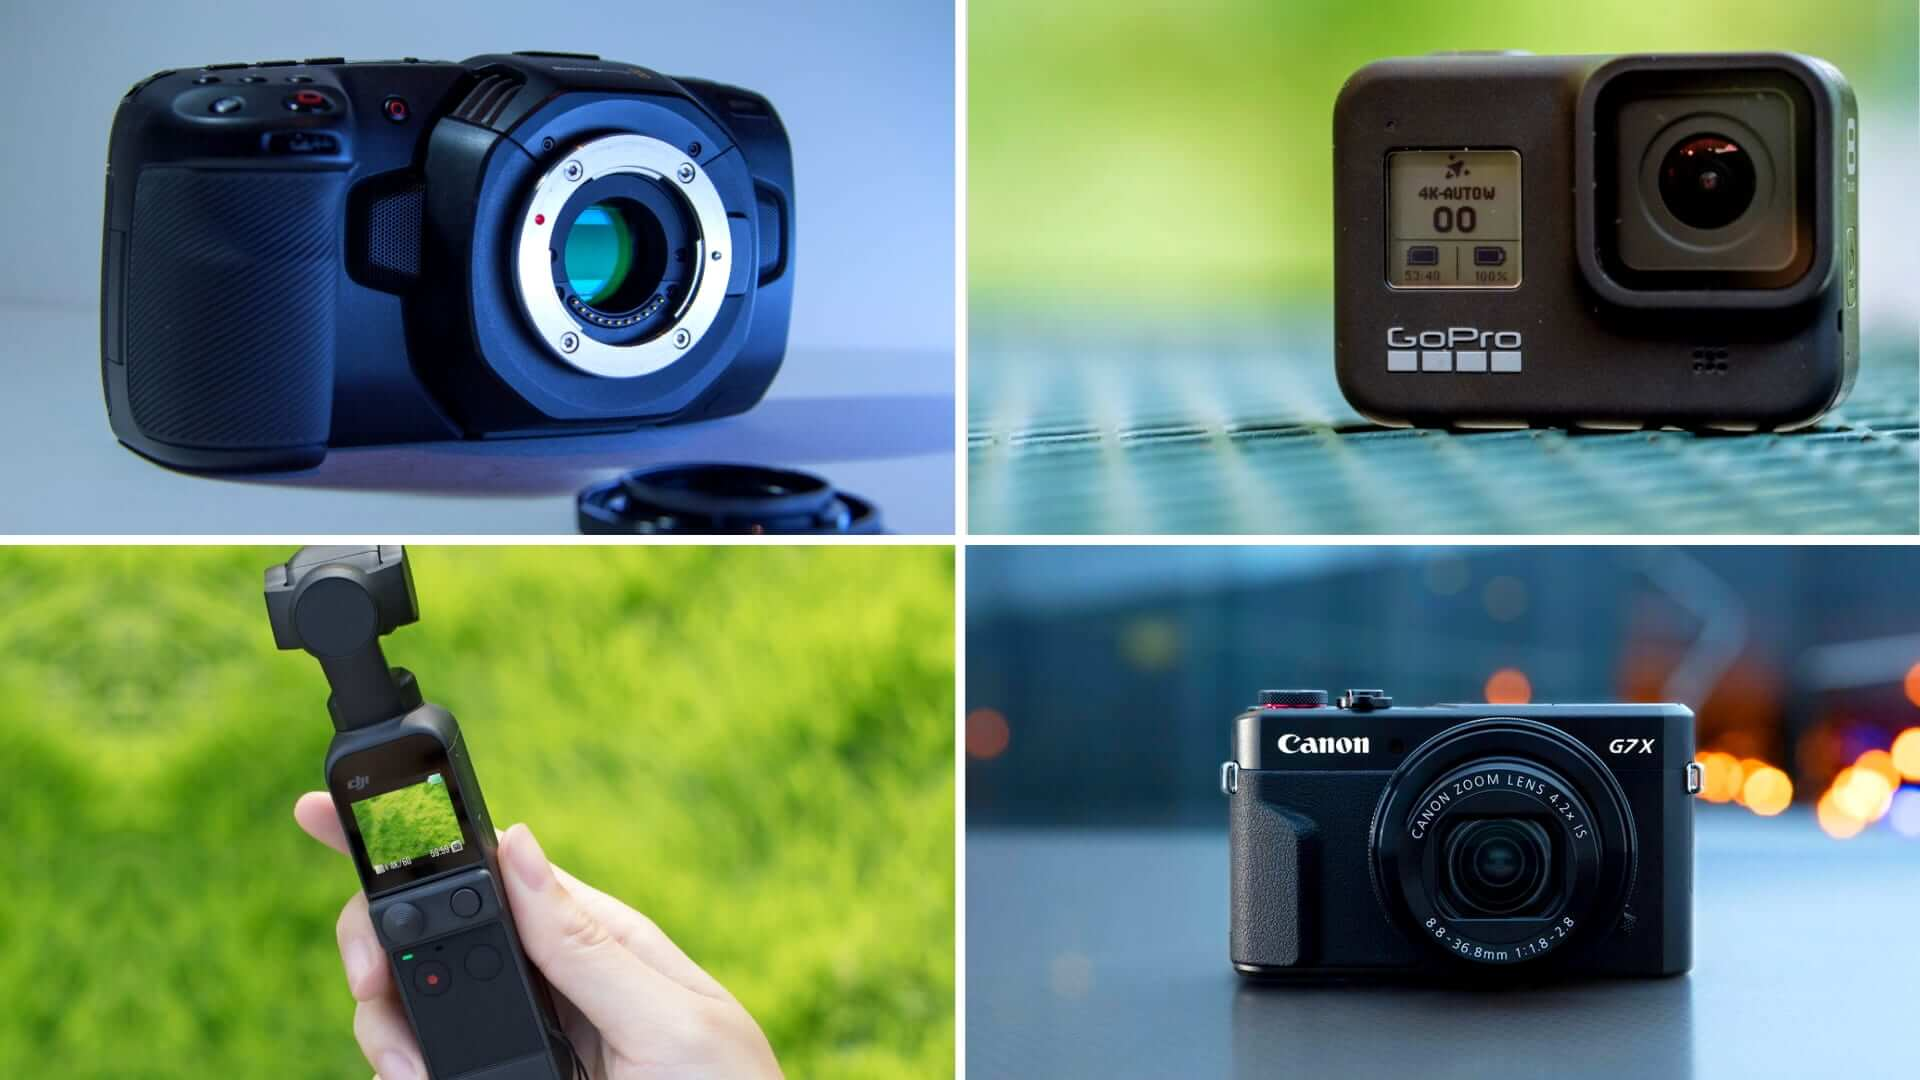 The best Slow Motion Cameras on the market today